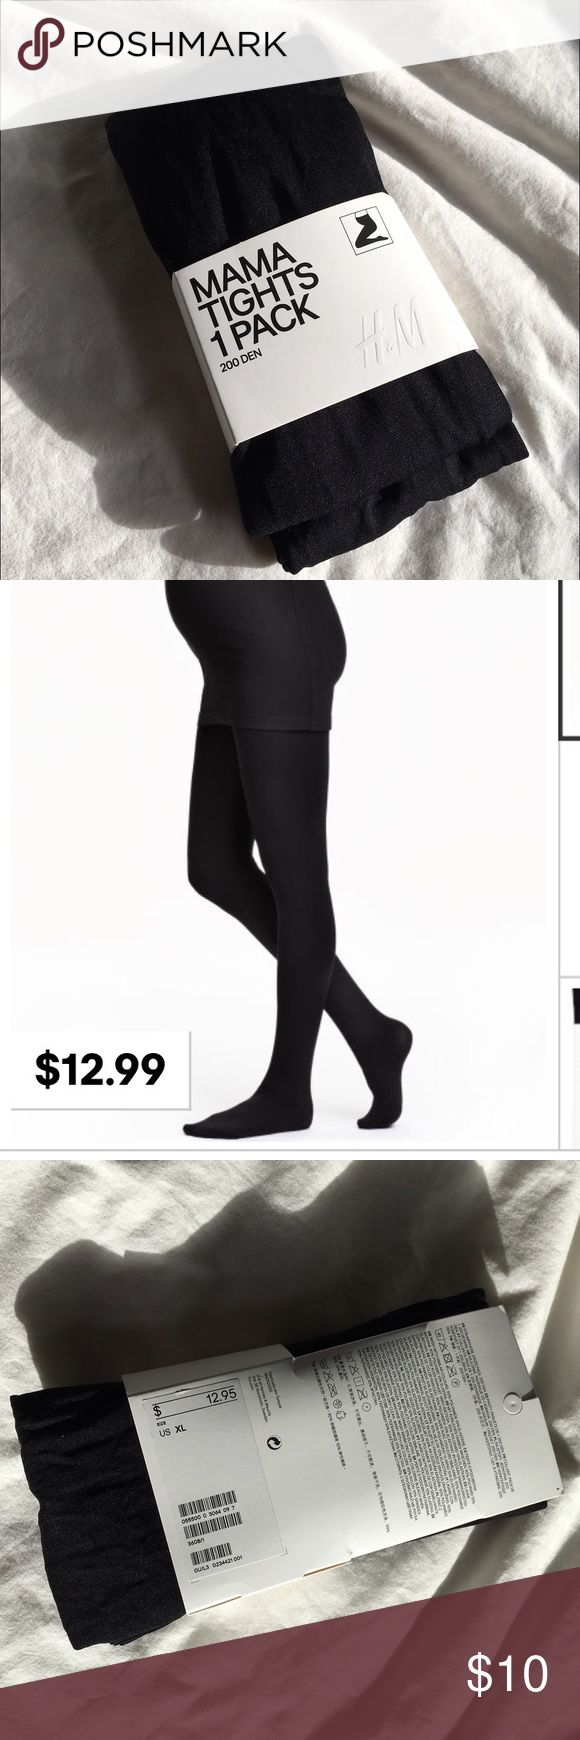 NWT H&M Mama Black Tights - Maternity New with tags because I missed the return window. These 200 denier black tights will be great with dresses and tunics through the winter. Black H&M maternity tights. H&M Accessories Hosiery & Socks